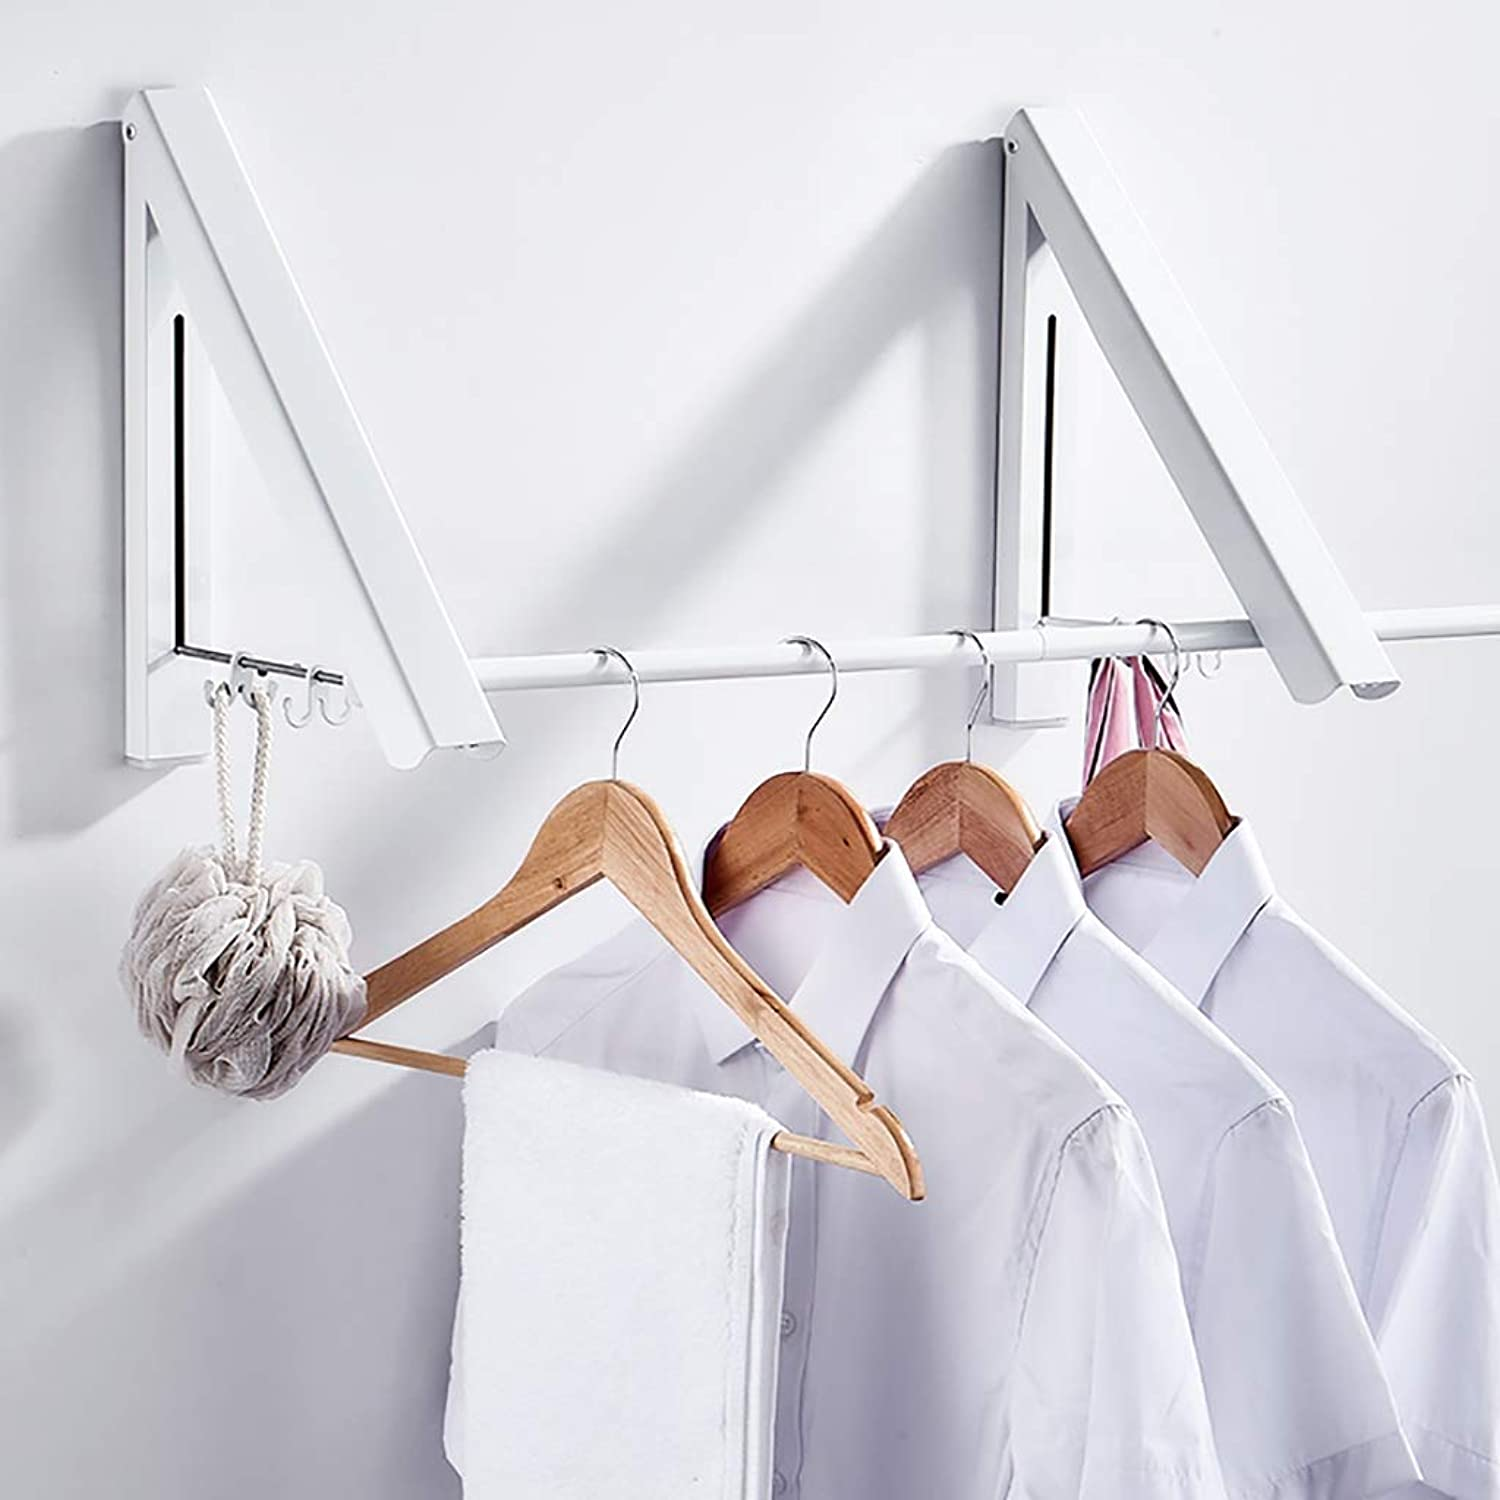 Space Aluminum Bathroom Wall Hanging Folding Drying Rack Balcony Wall Coat Rack White Three Specifications. (Size   40cm)